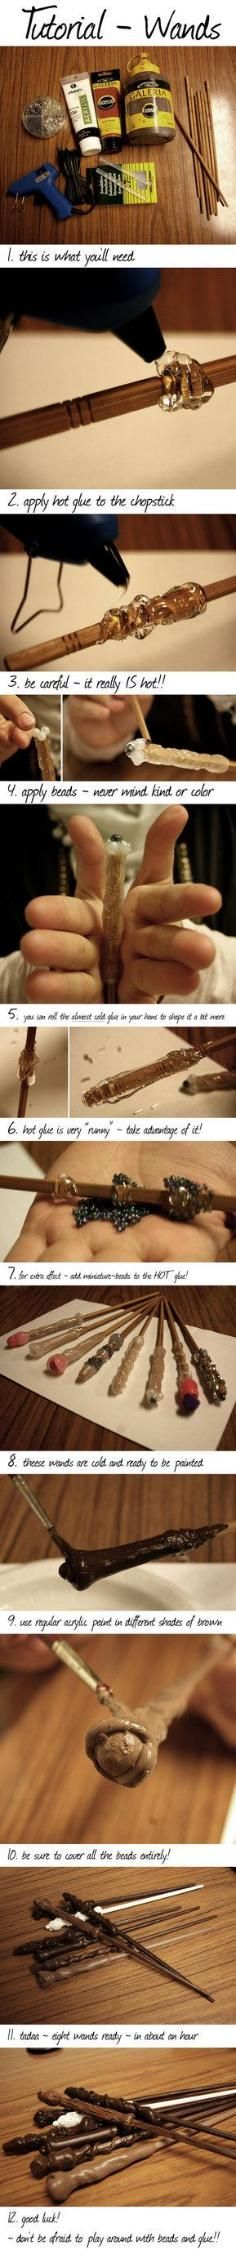 DIY Tutorial: DIY Witch Costumes / DIY Make Your Own Cheaper, Better Halloween...Witch Costume - Bead&Cord